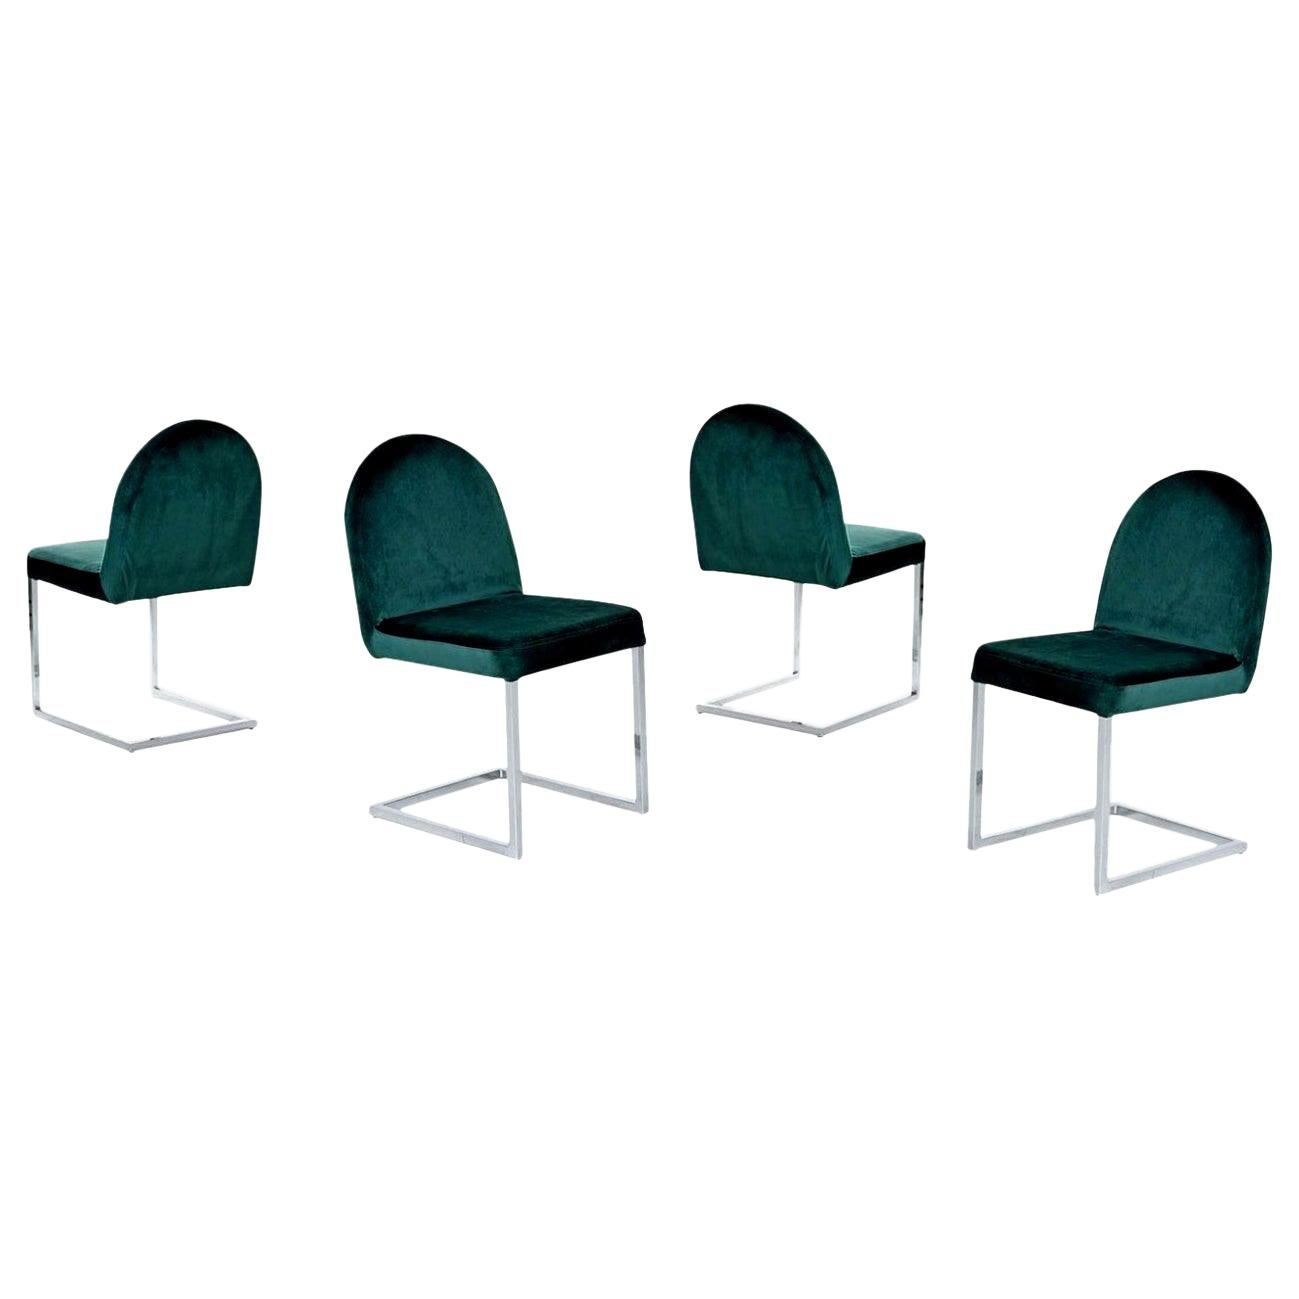 Cantilever Chrome Dining Chairs, 1970s Forest Green Velvet Milo Baughman Style